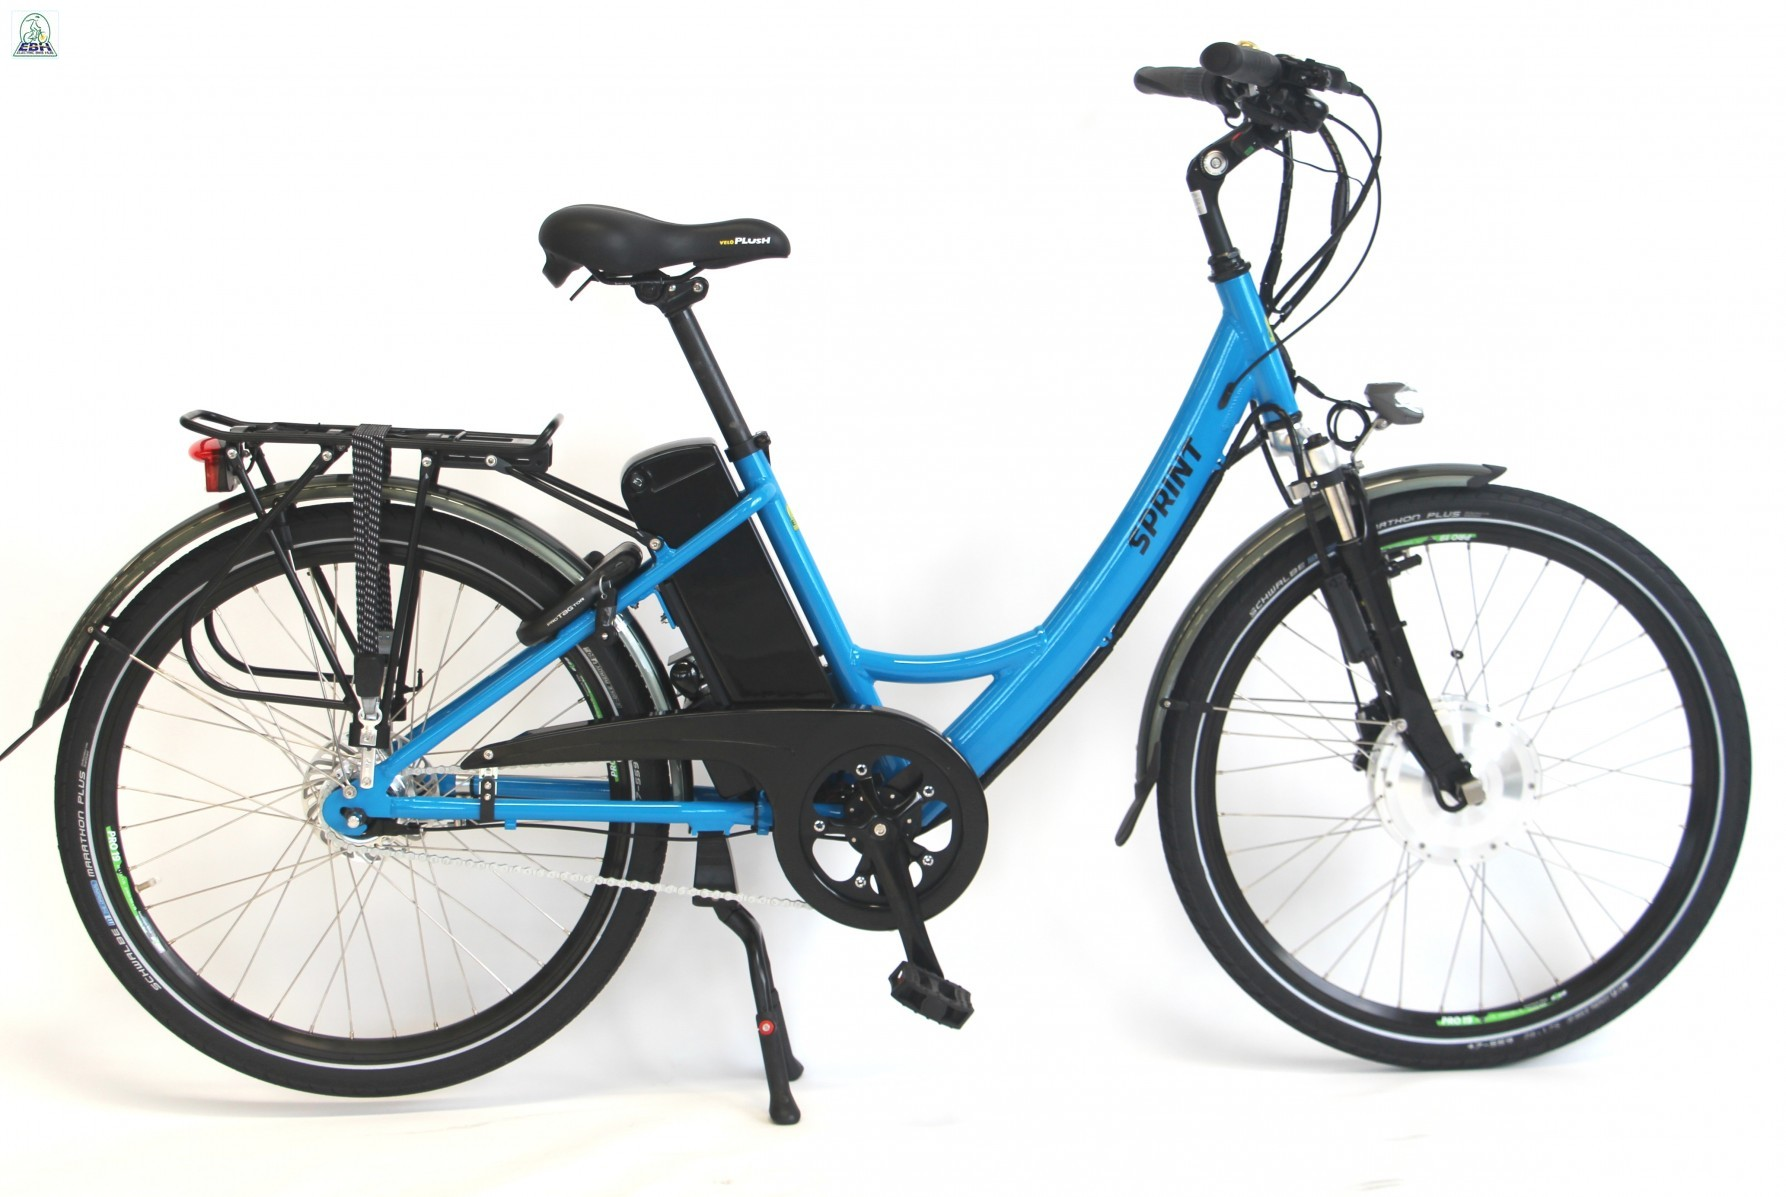 ezee electric bike sprint 7l